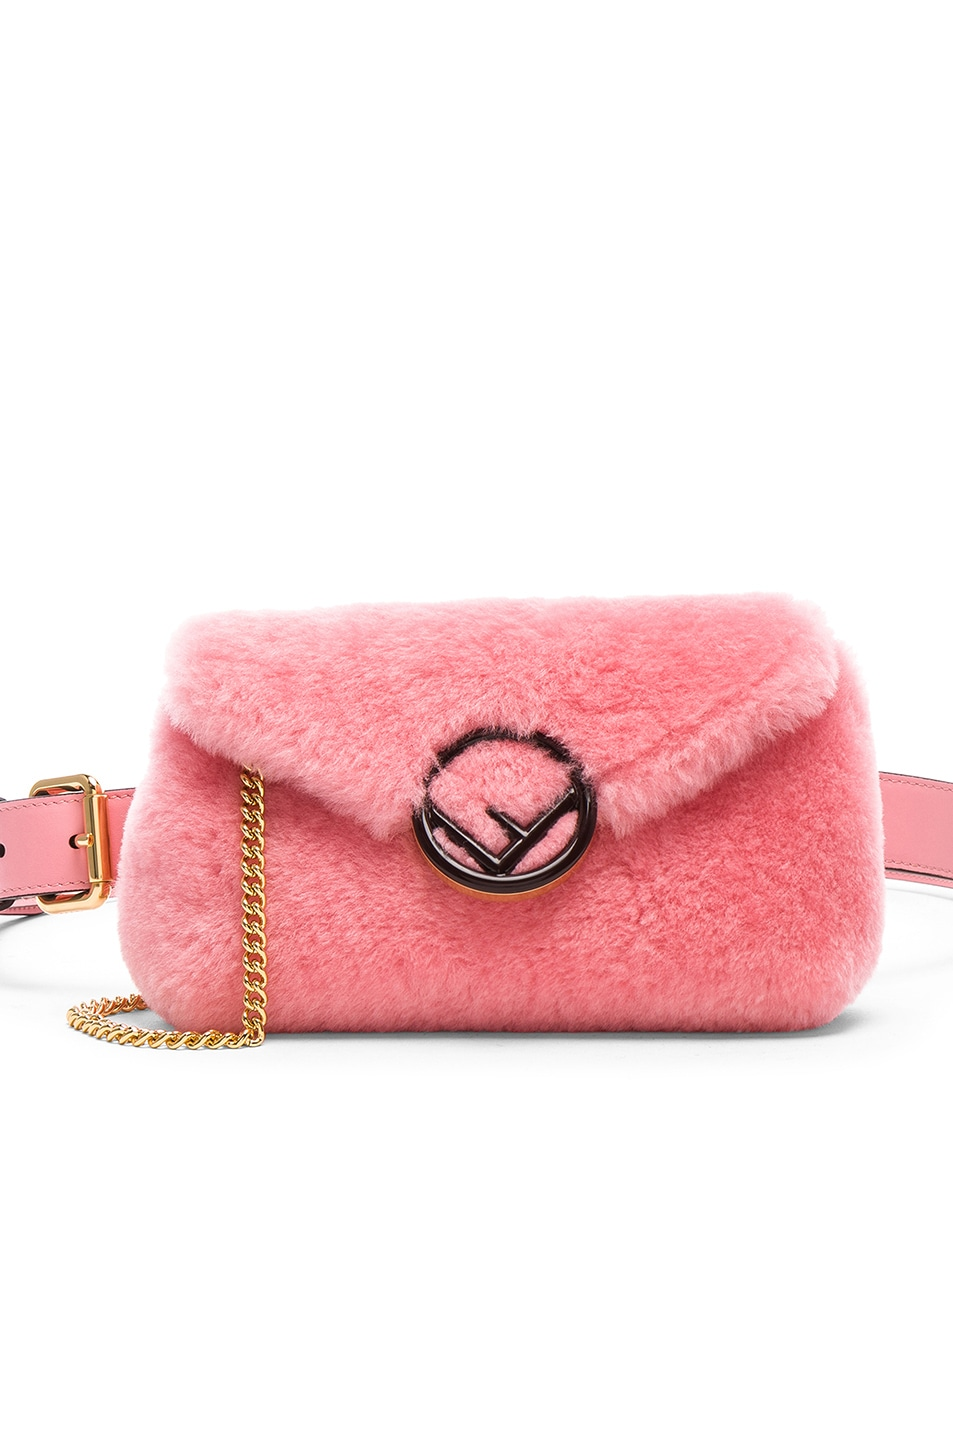 99ae4454d82 Image 1 of Fendi Shearling Hip Belt in Pink